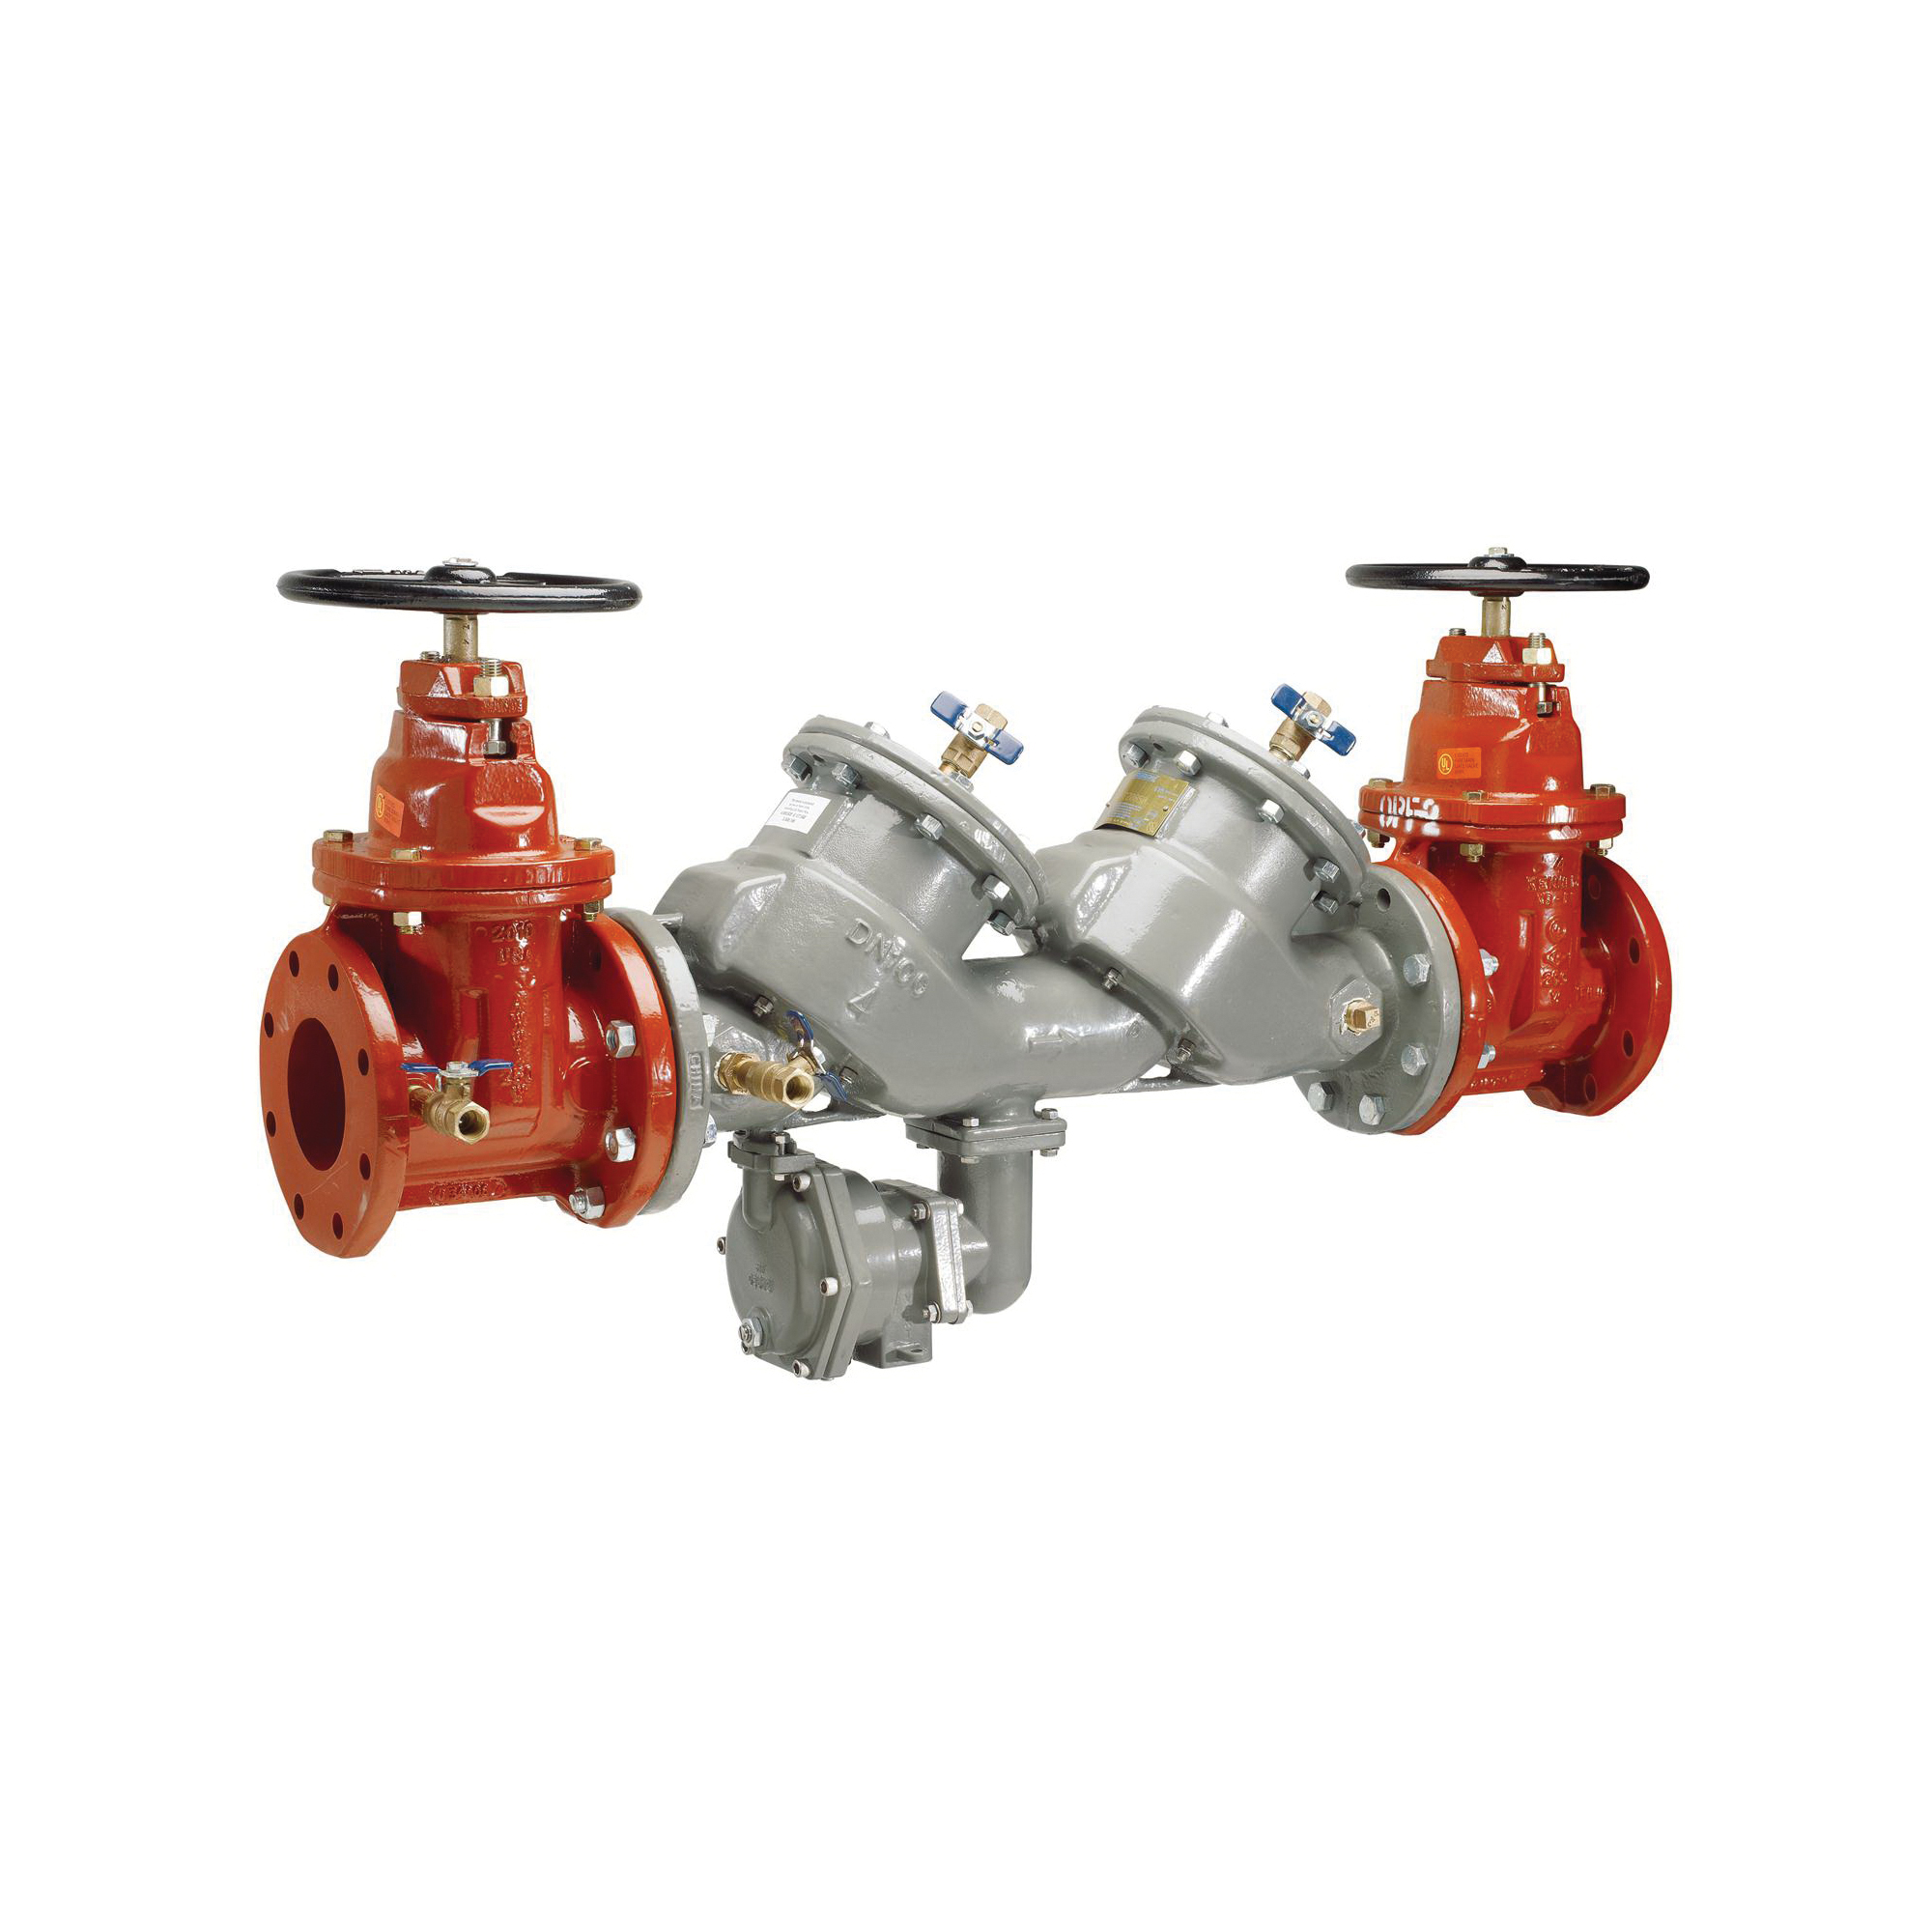 Febco® MasterSeries® 0122933 LF860 In-Line Large Diameter Reduced Pressure Zone Assembly, 3 in, Flange, Resilient Wedge Gate Valve, Ductile Iron Body